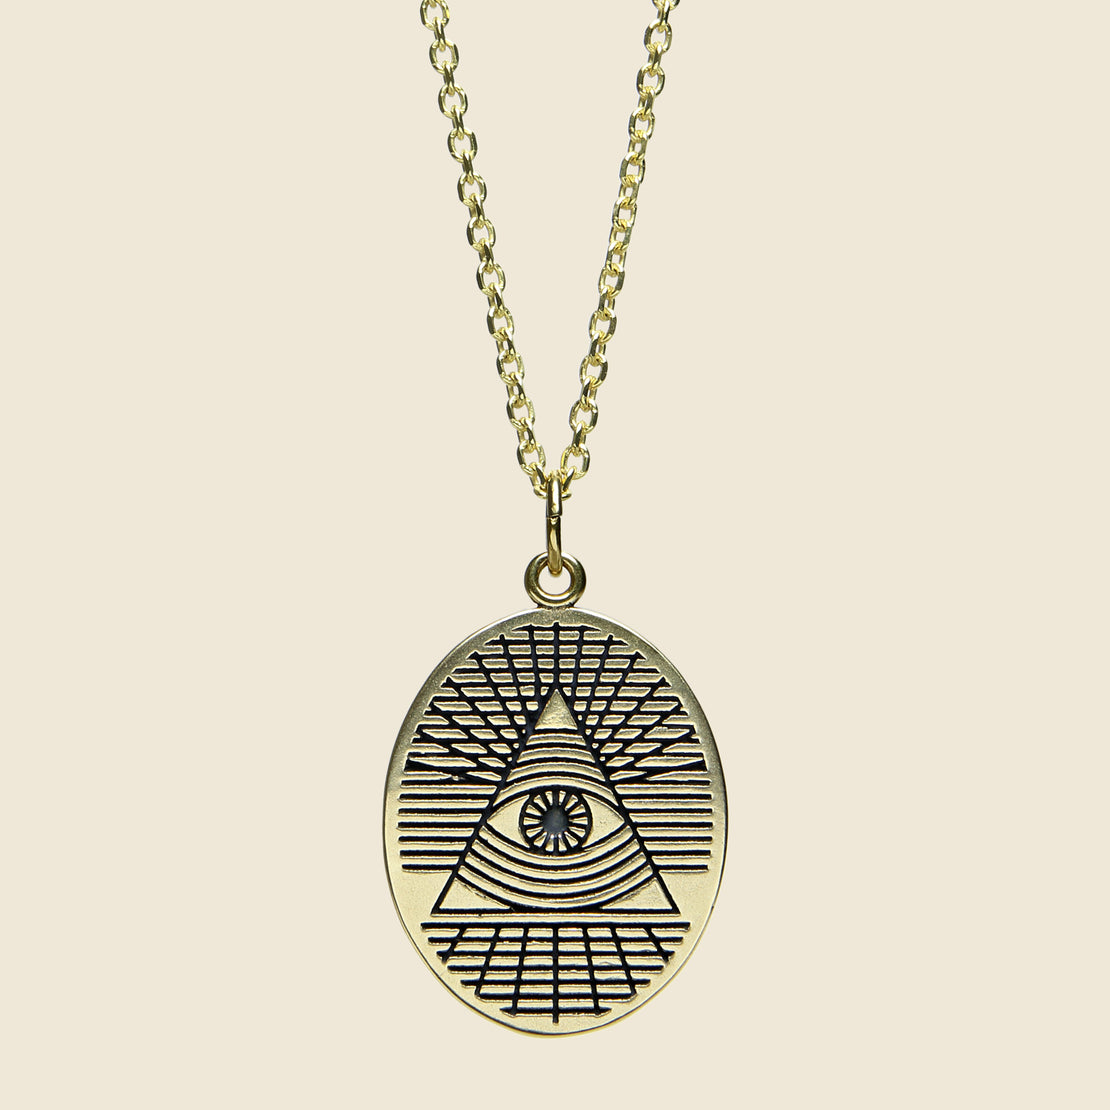 LHN Jewelry All Seeing Eye Pendant - Brass